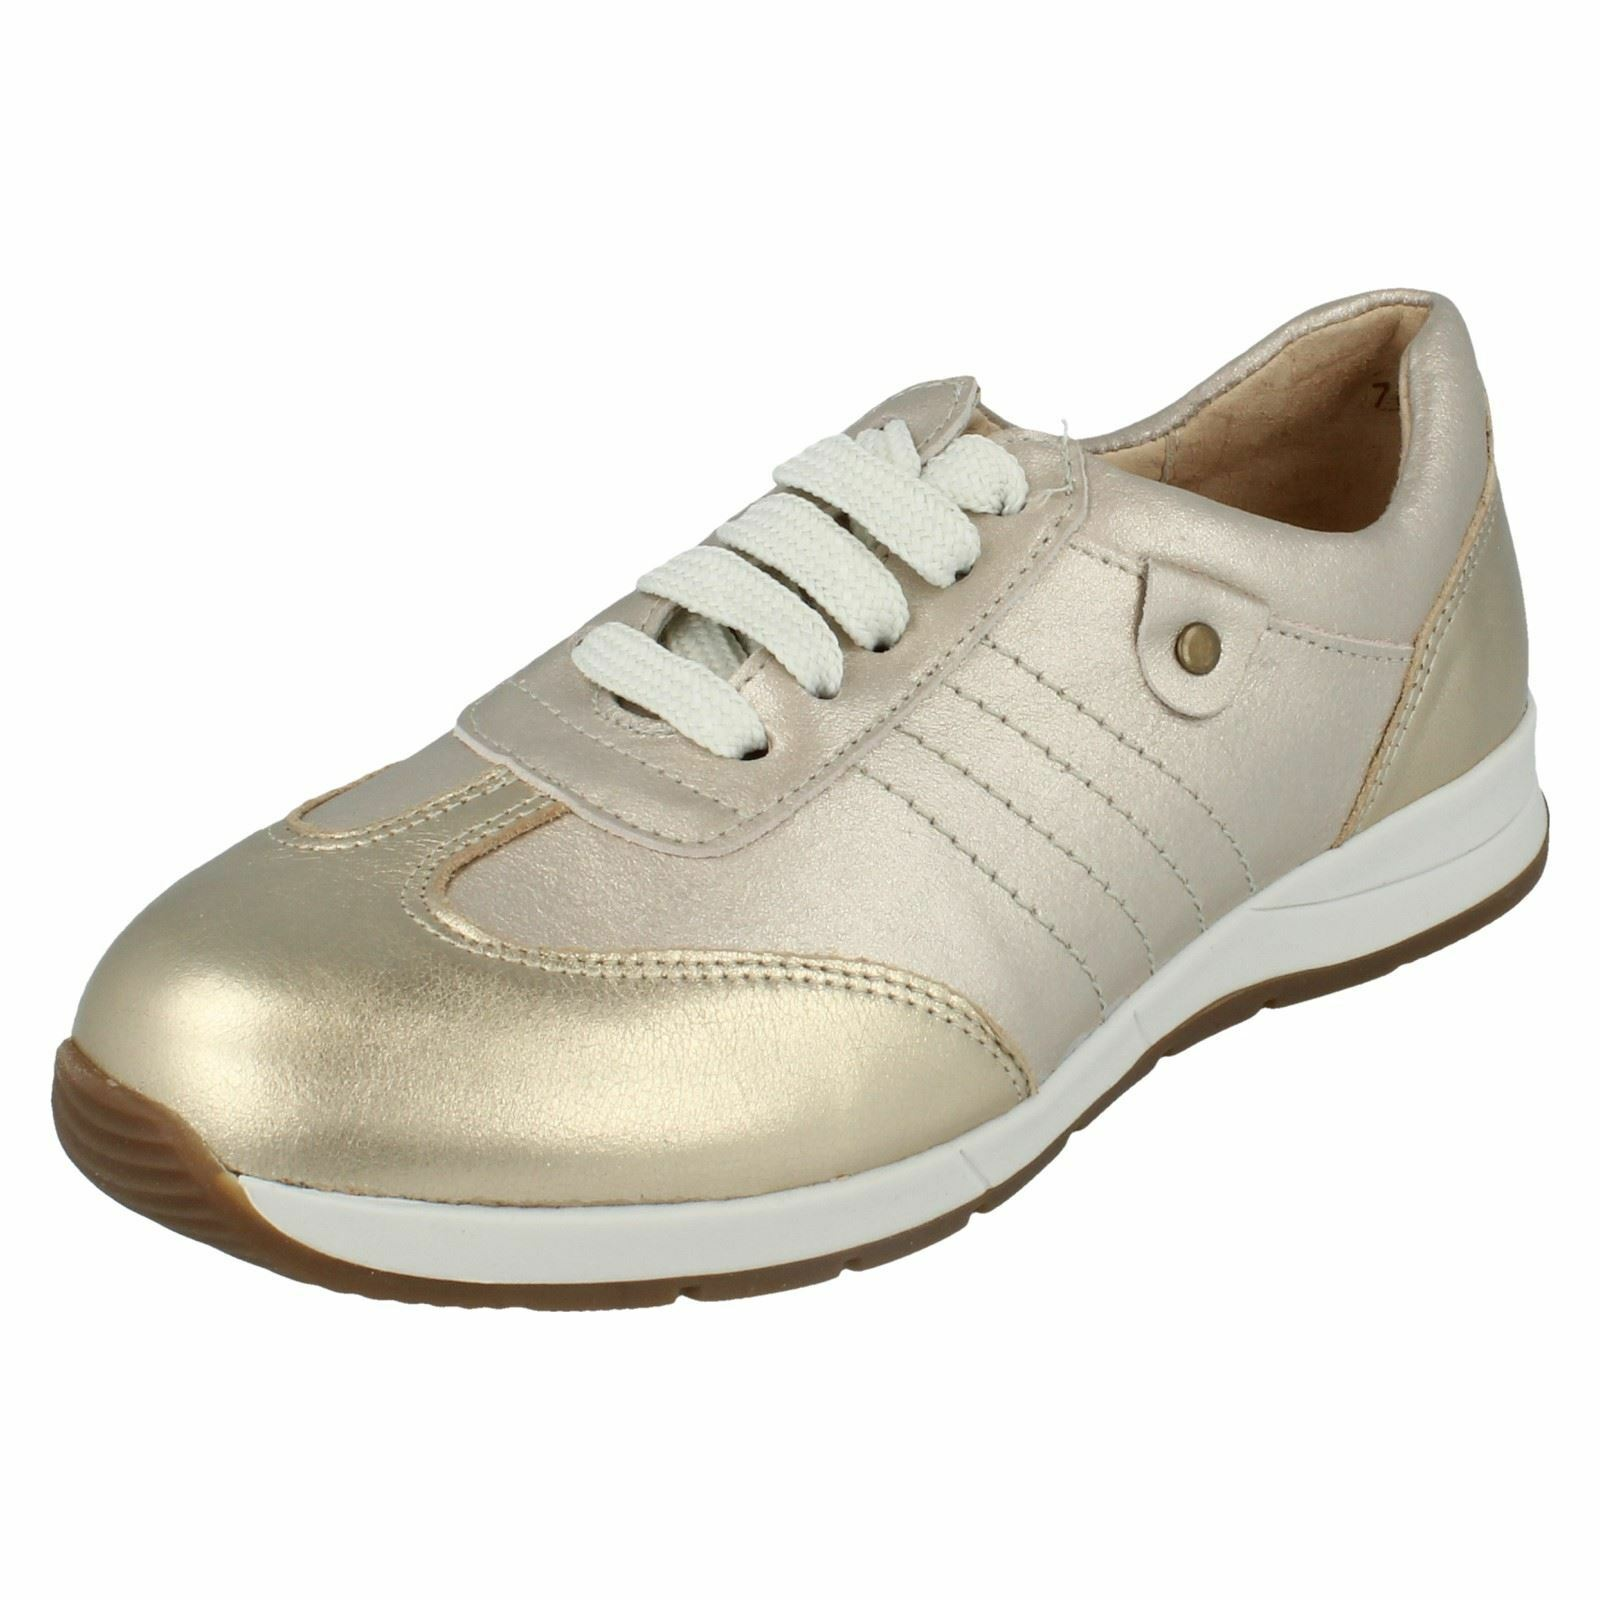 Easy B 79397S Ladies Crystal Metallic Lace Up Leather Trainers 4E Fit (R23B)